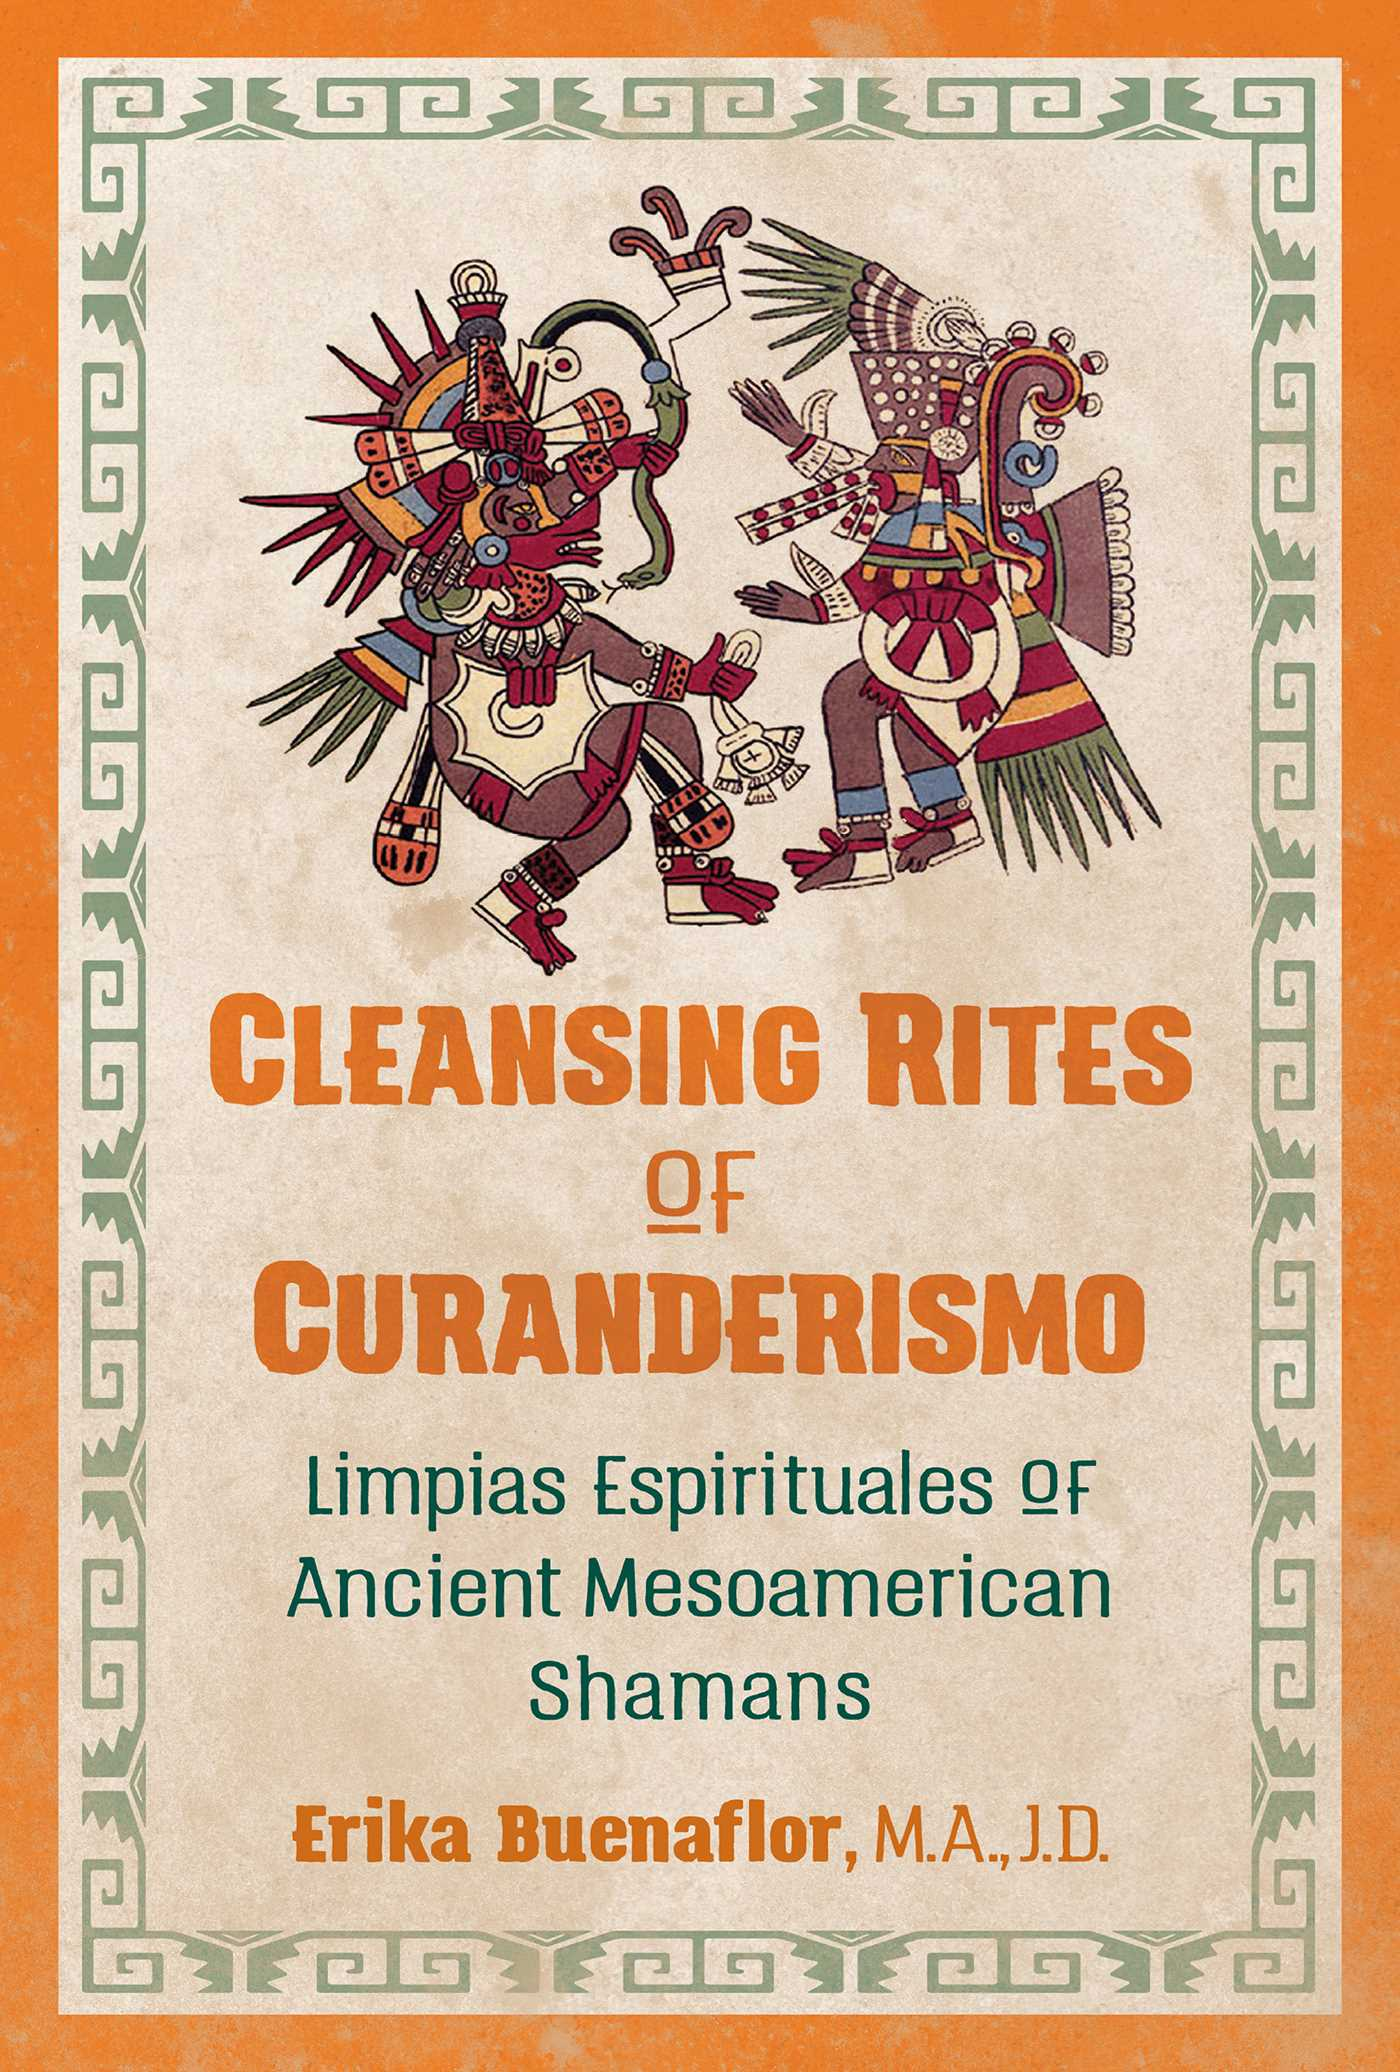 Cleansing rites of curanderismo 9781591433118 hr